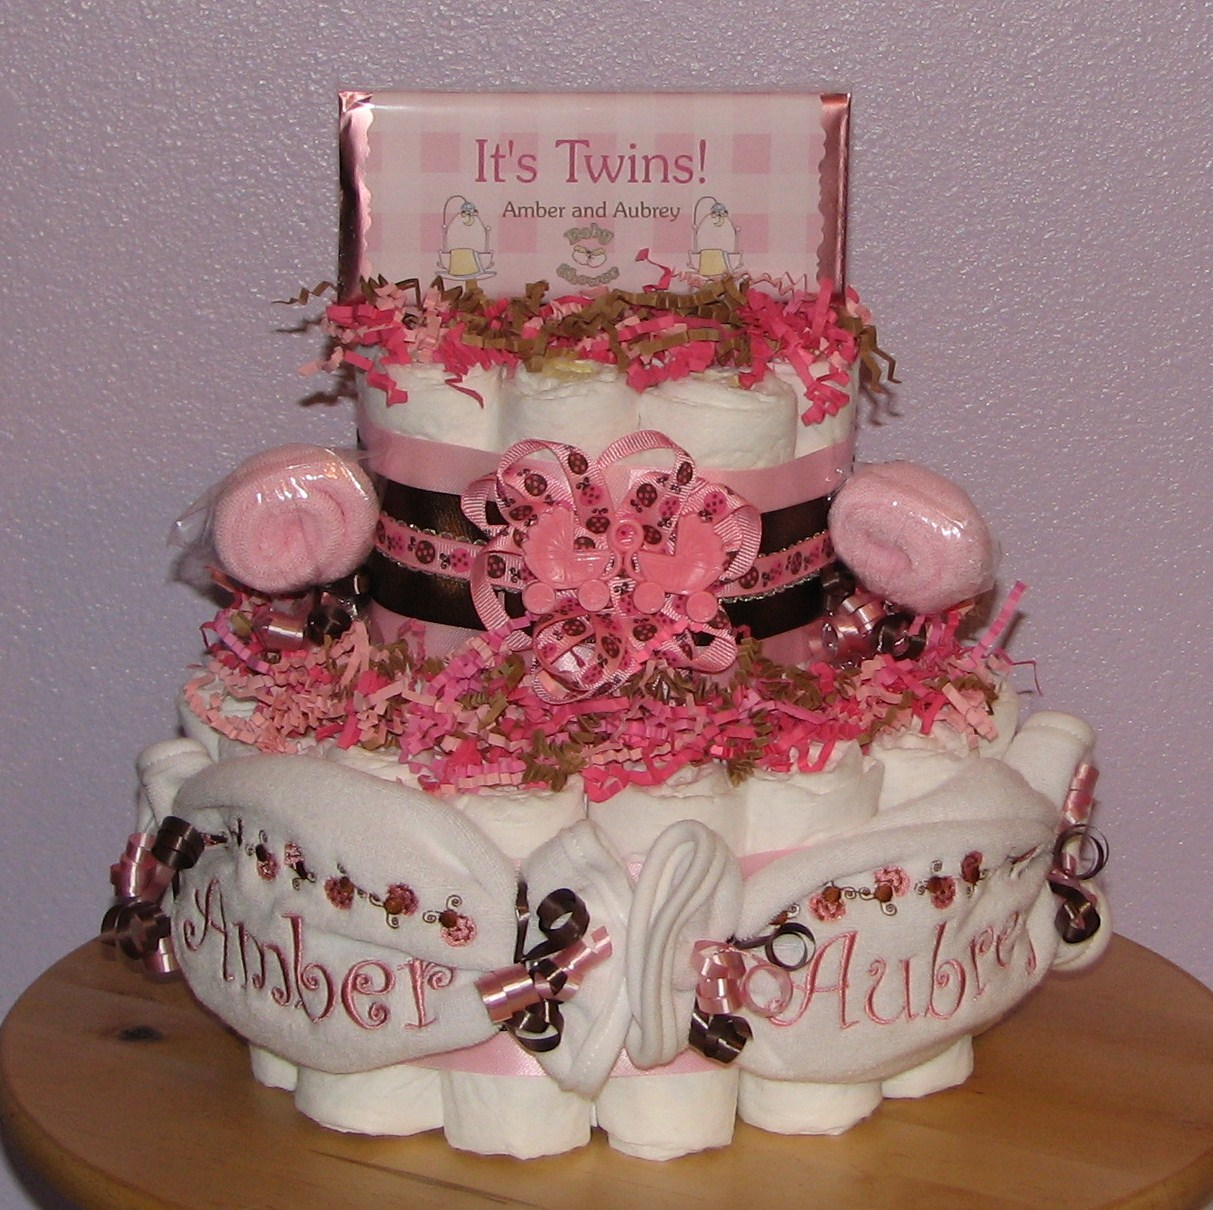 PinkBrown-Ladybug-Diaper-Cake.JPG - Personalized Twins Diaper Cake